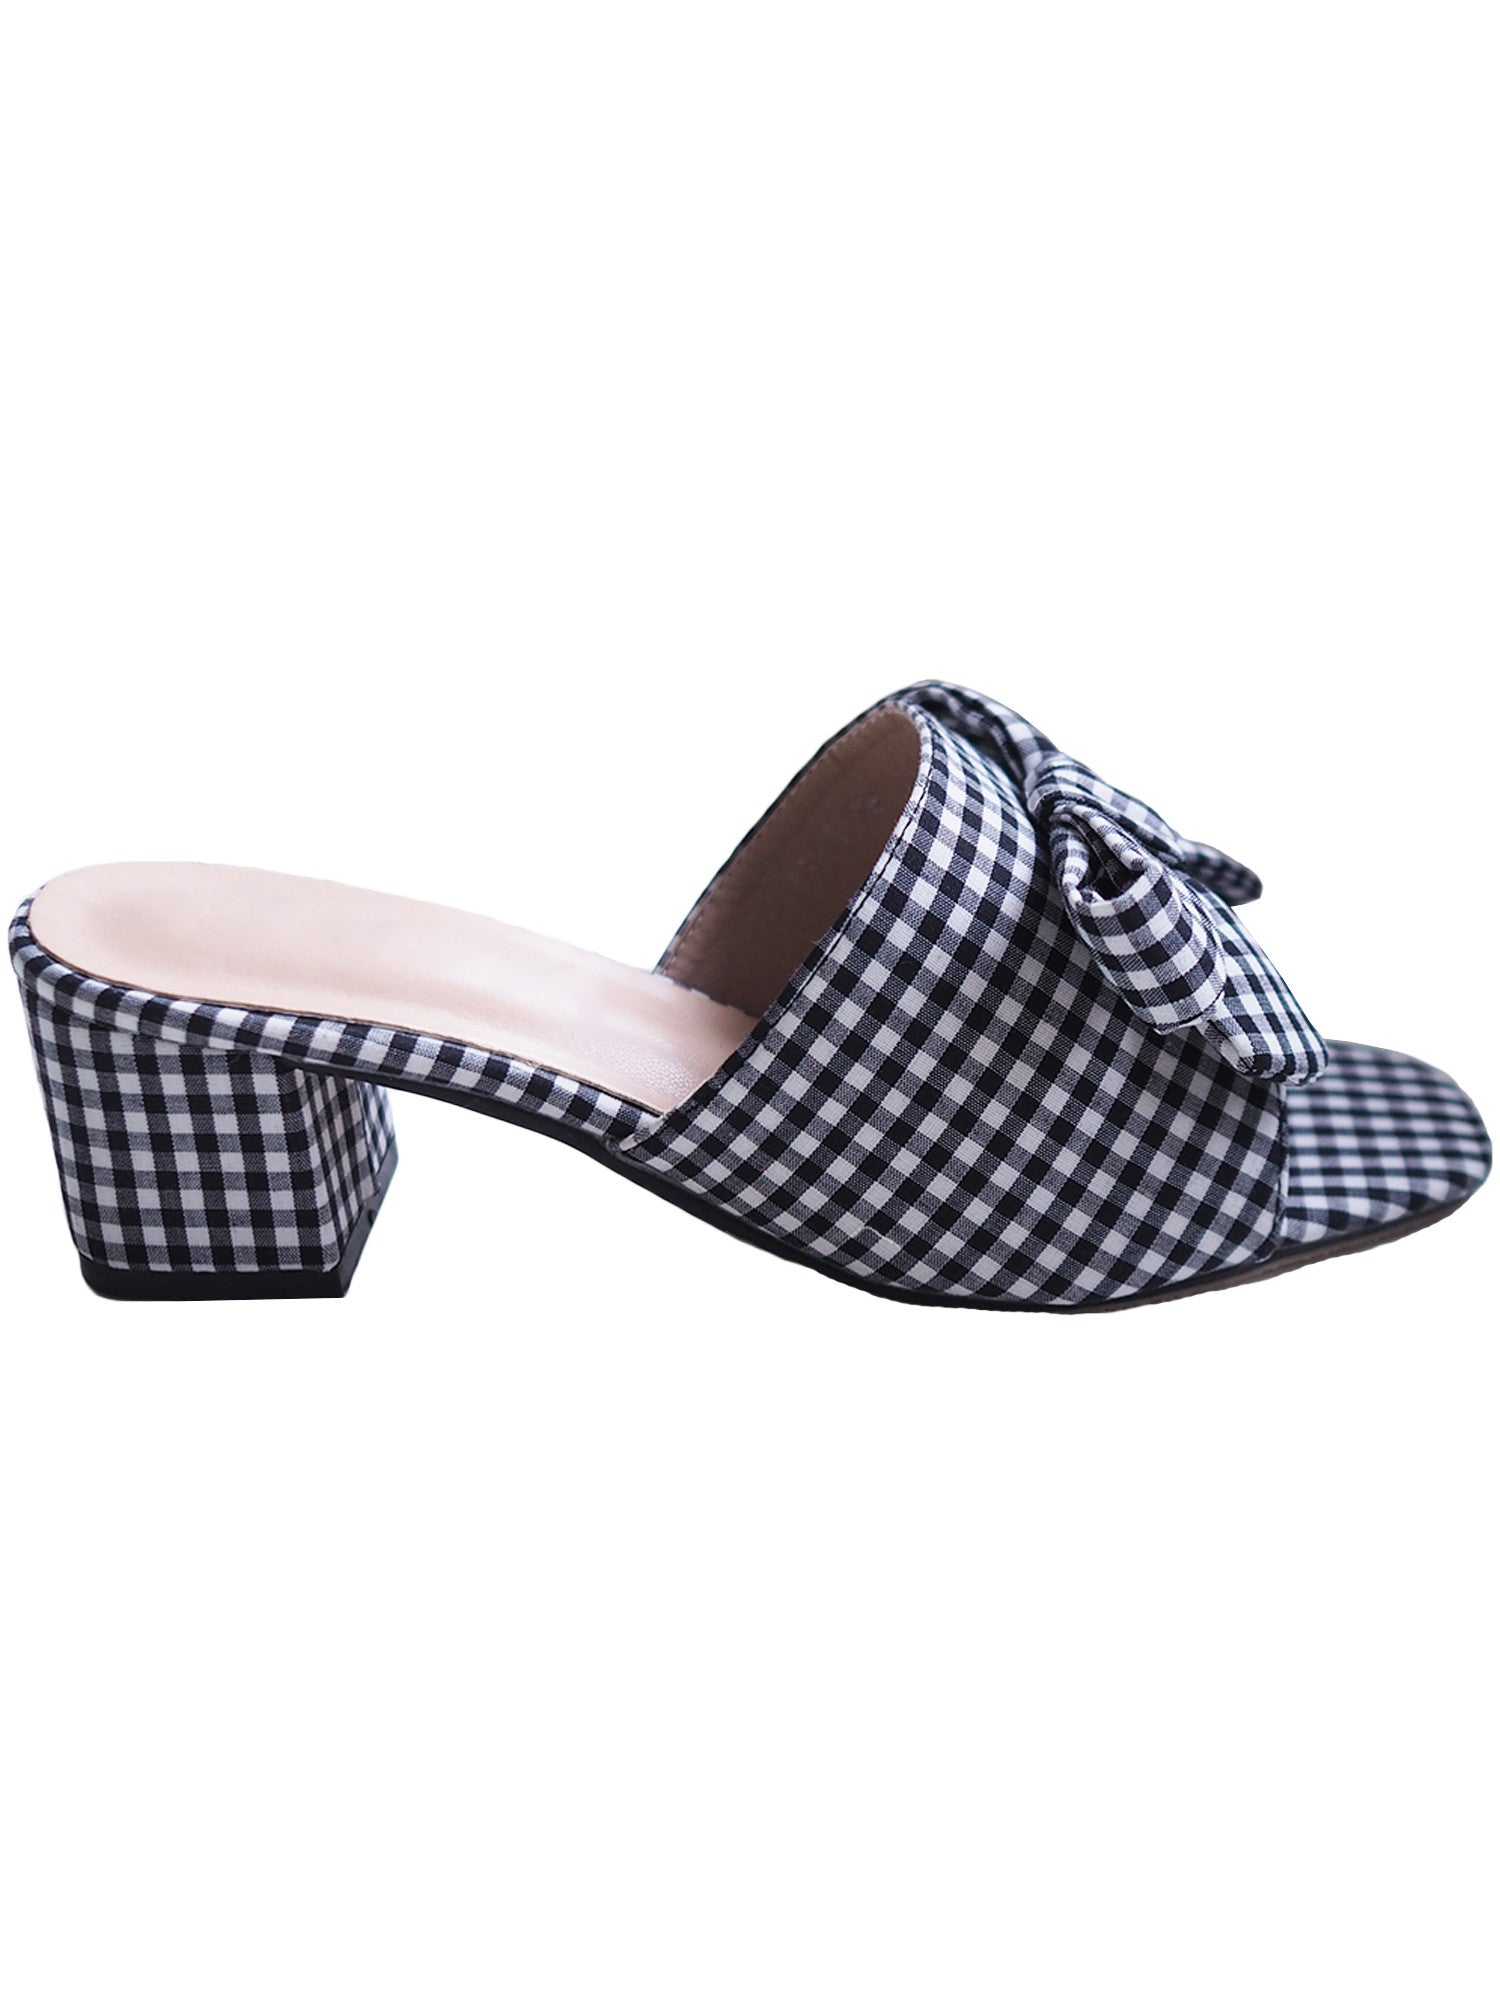 'Valentina' Bow Plaid Slip-on Heels